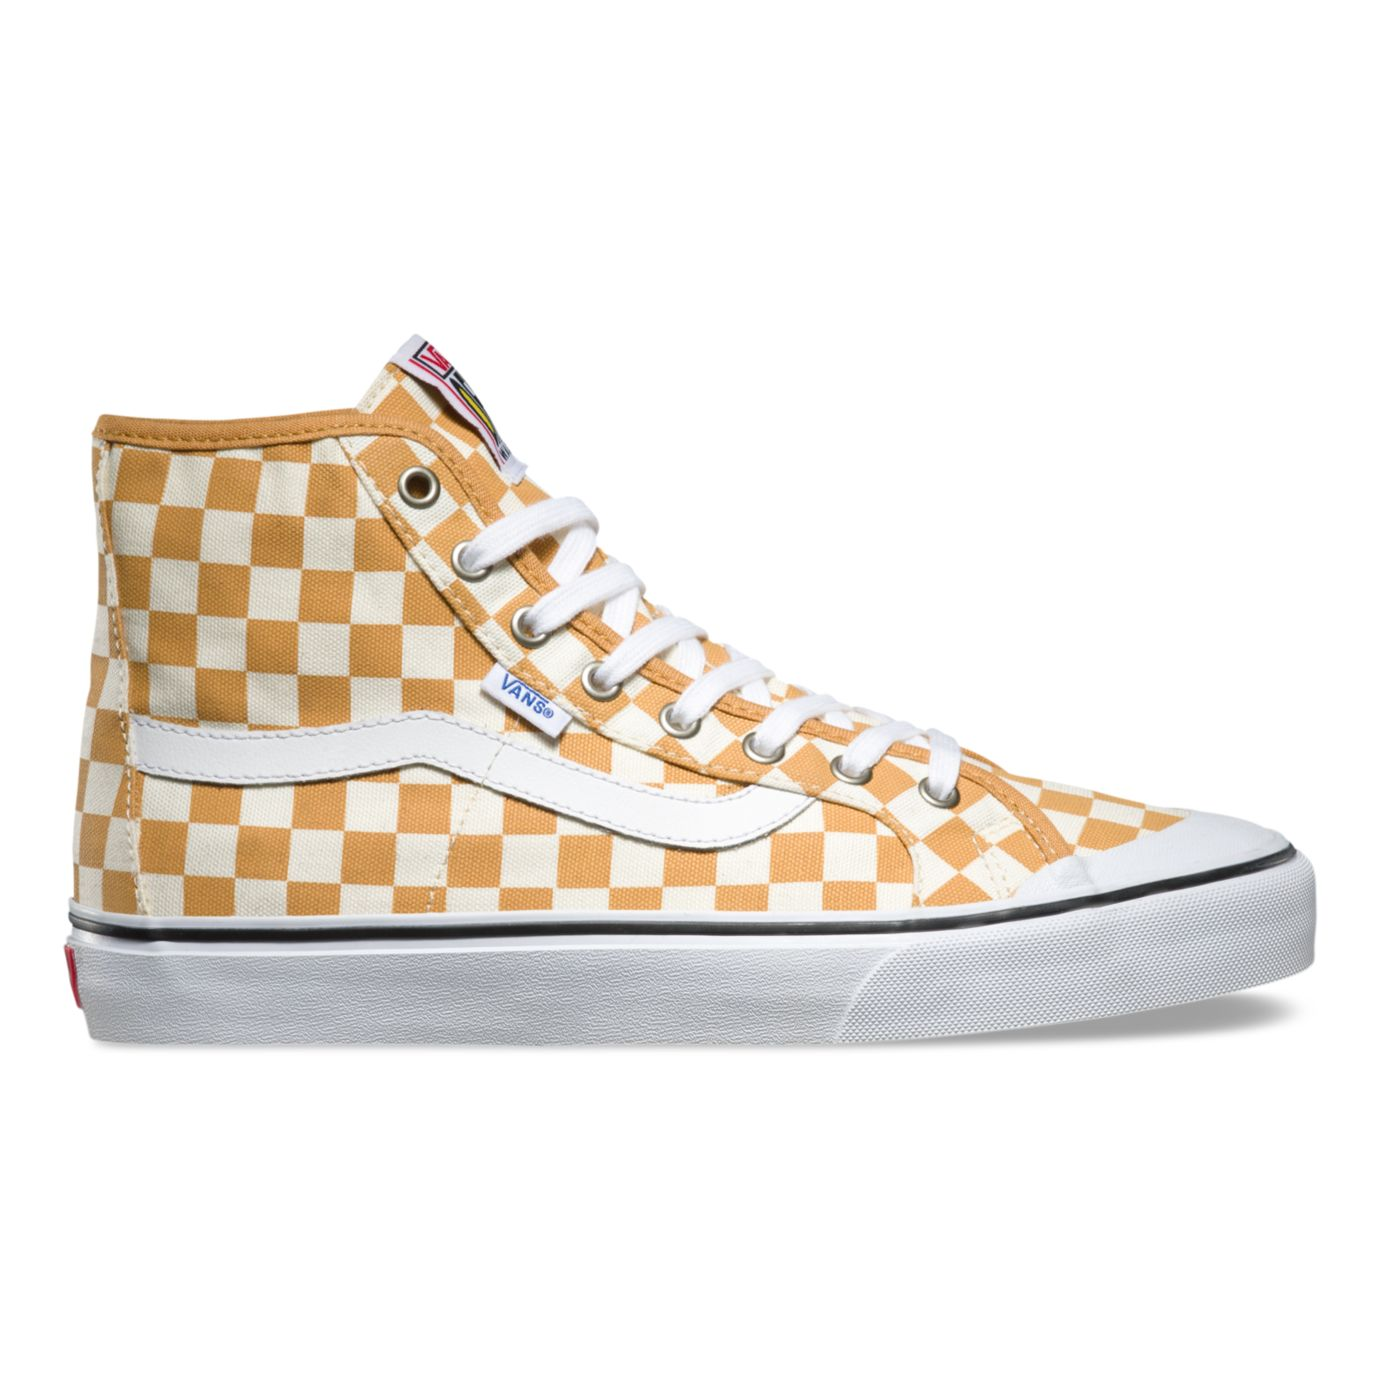 Vans Heritage is Celebrated with Retro Checkerboard Designs